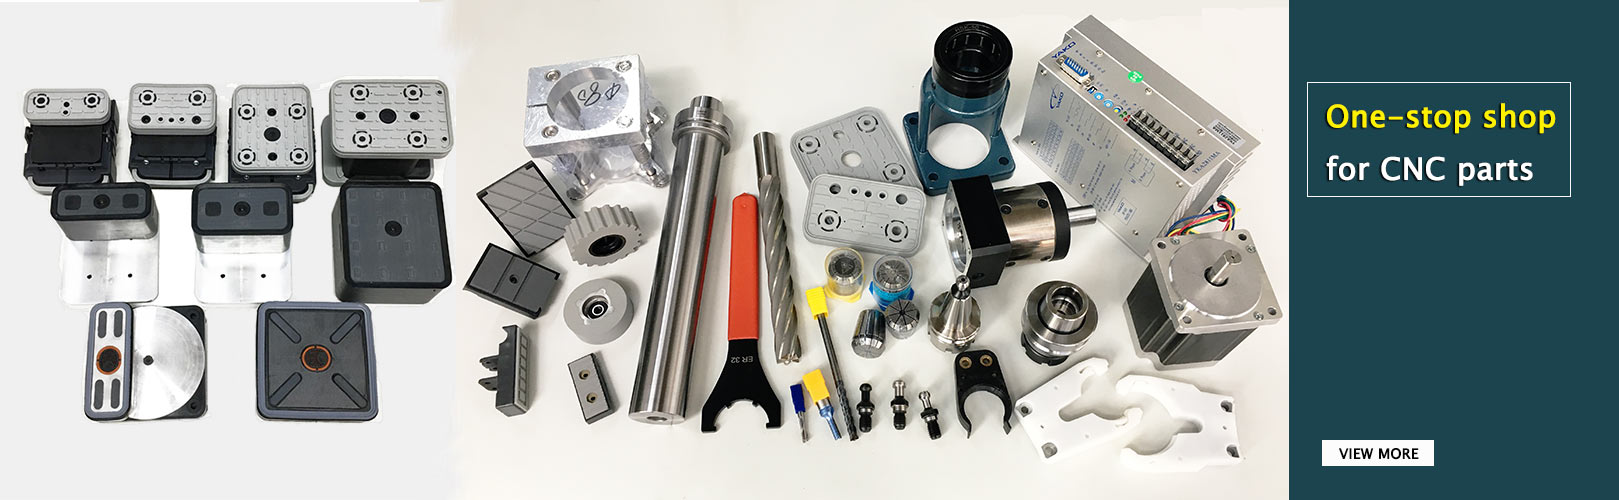 cnc router parts supplier